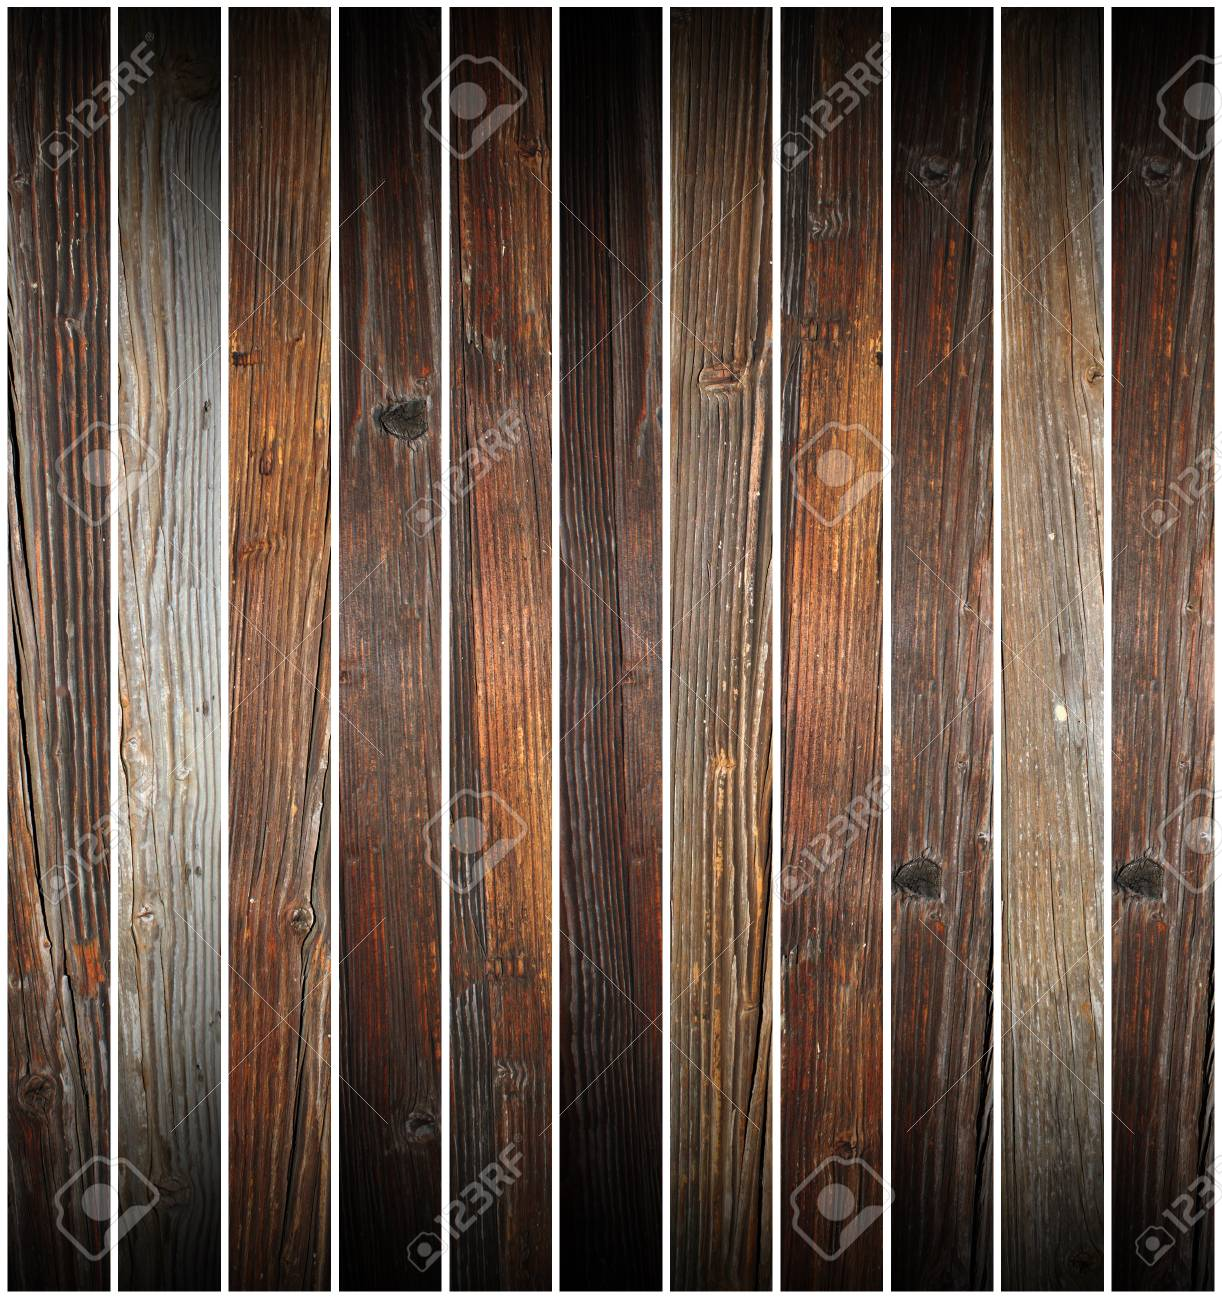 pieces of old wood on white background ready  for design Stock Photo - 25739996